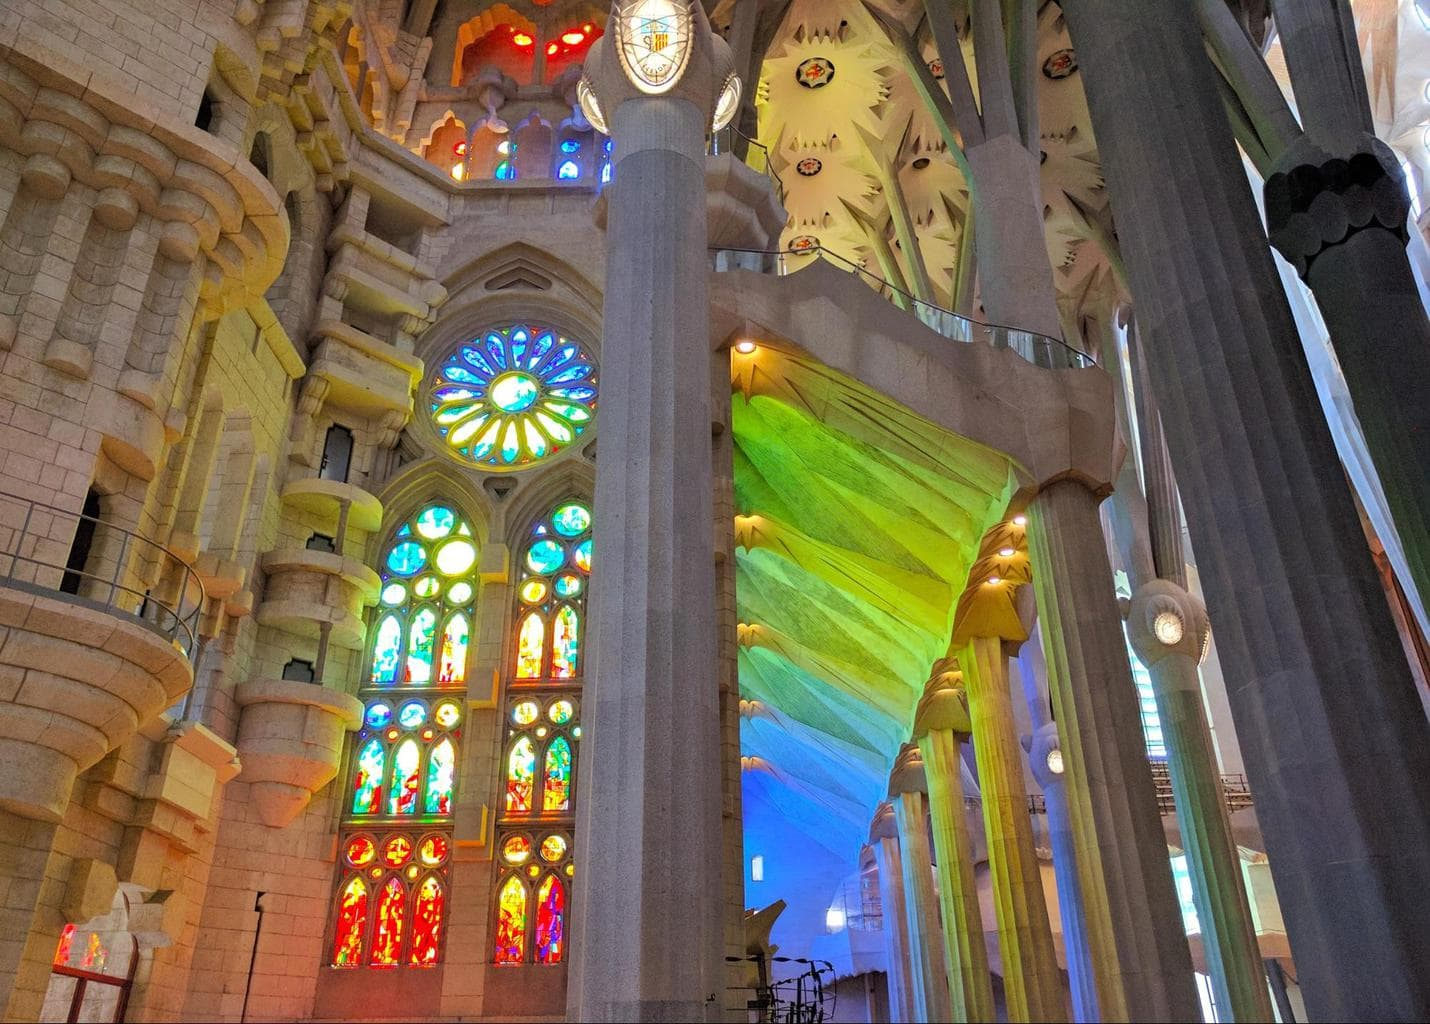 The light coming through the stained glass of the Sagrada Familia